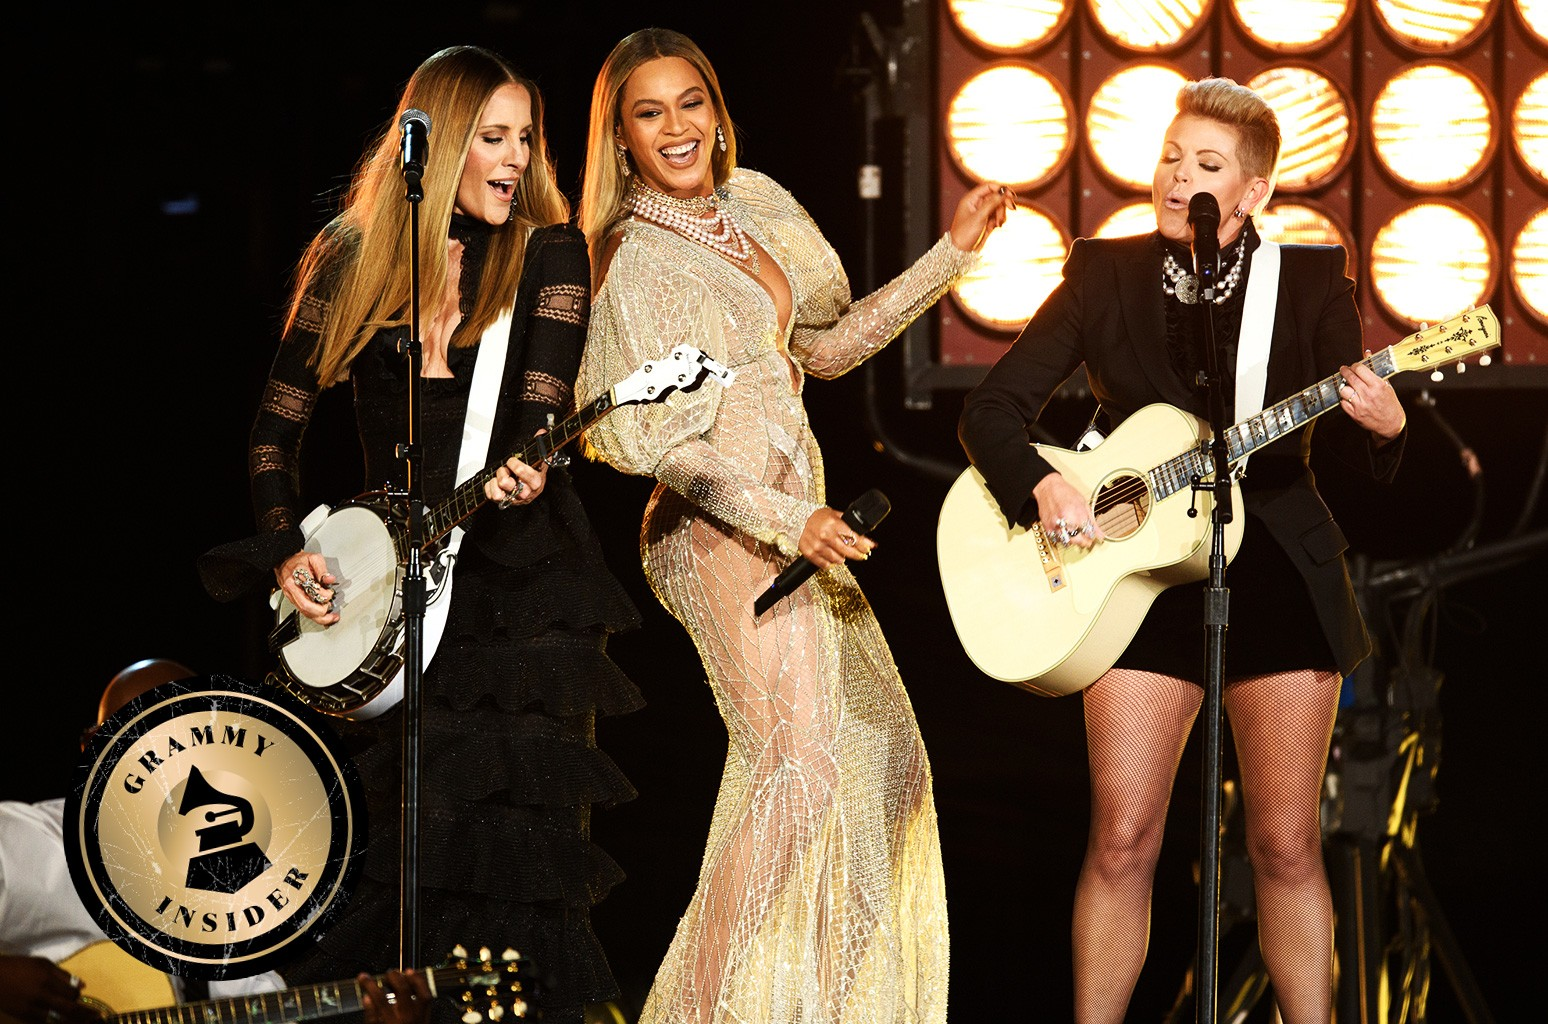 Beyoncé and The Dixie Chicks perform onstage at the 50th annual Country Music Awards on Nov. 2, 2016 in Nashville, Tenn.